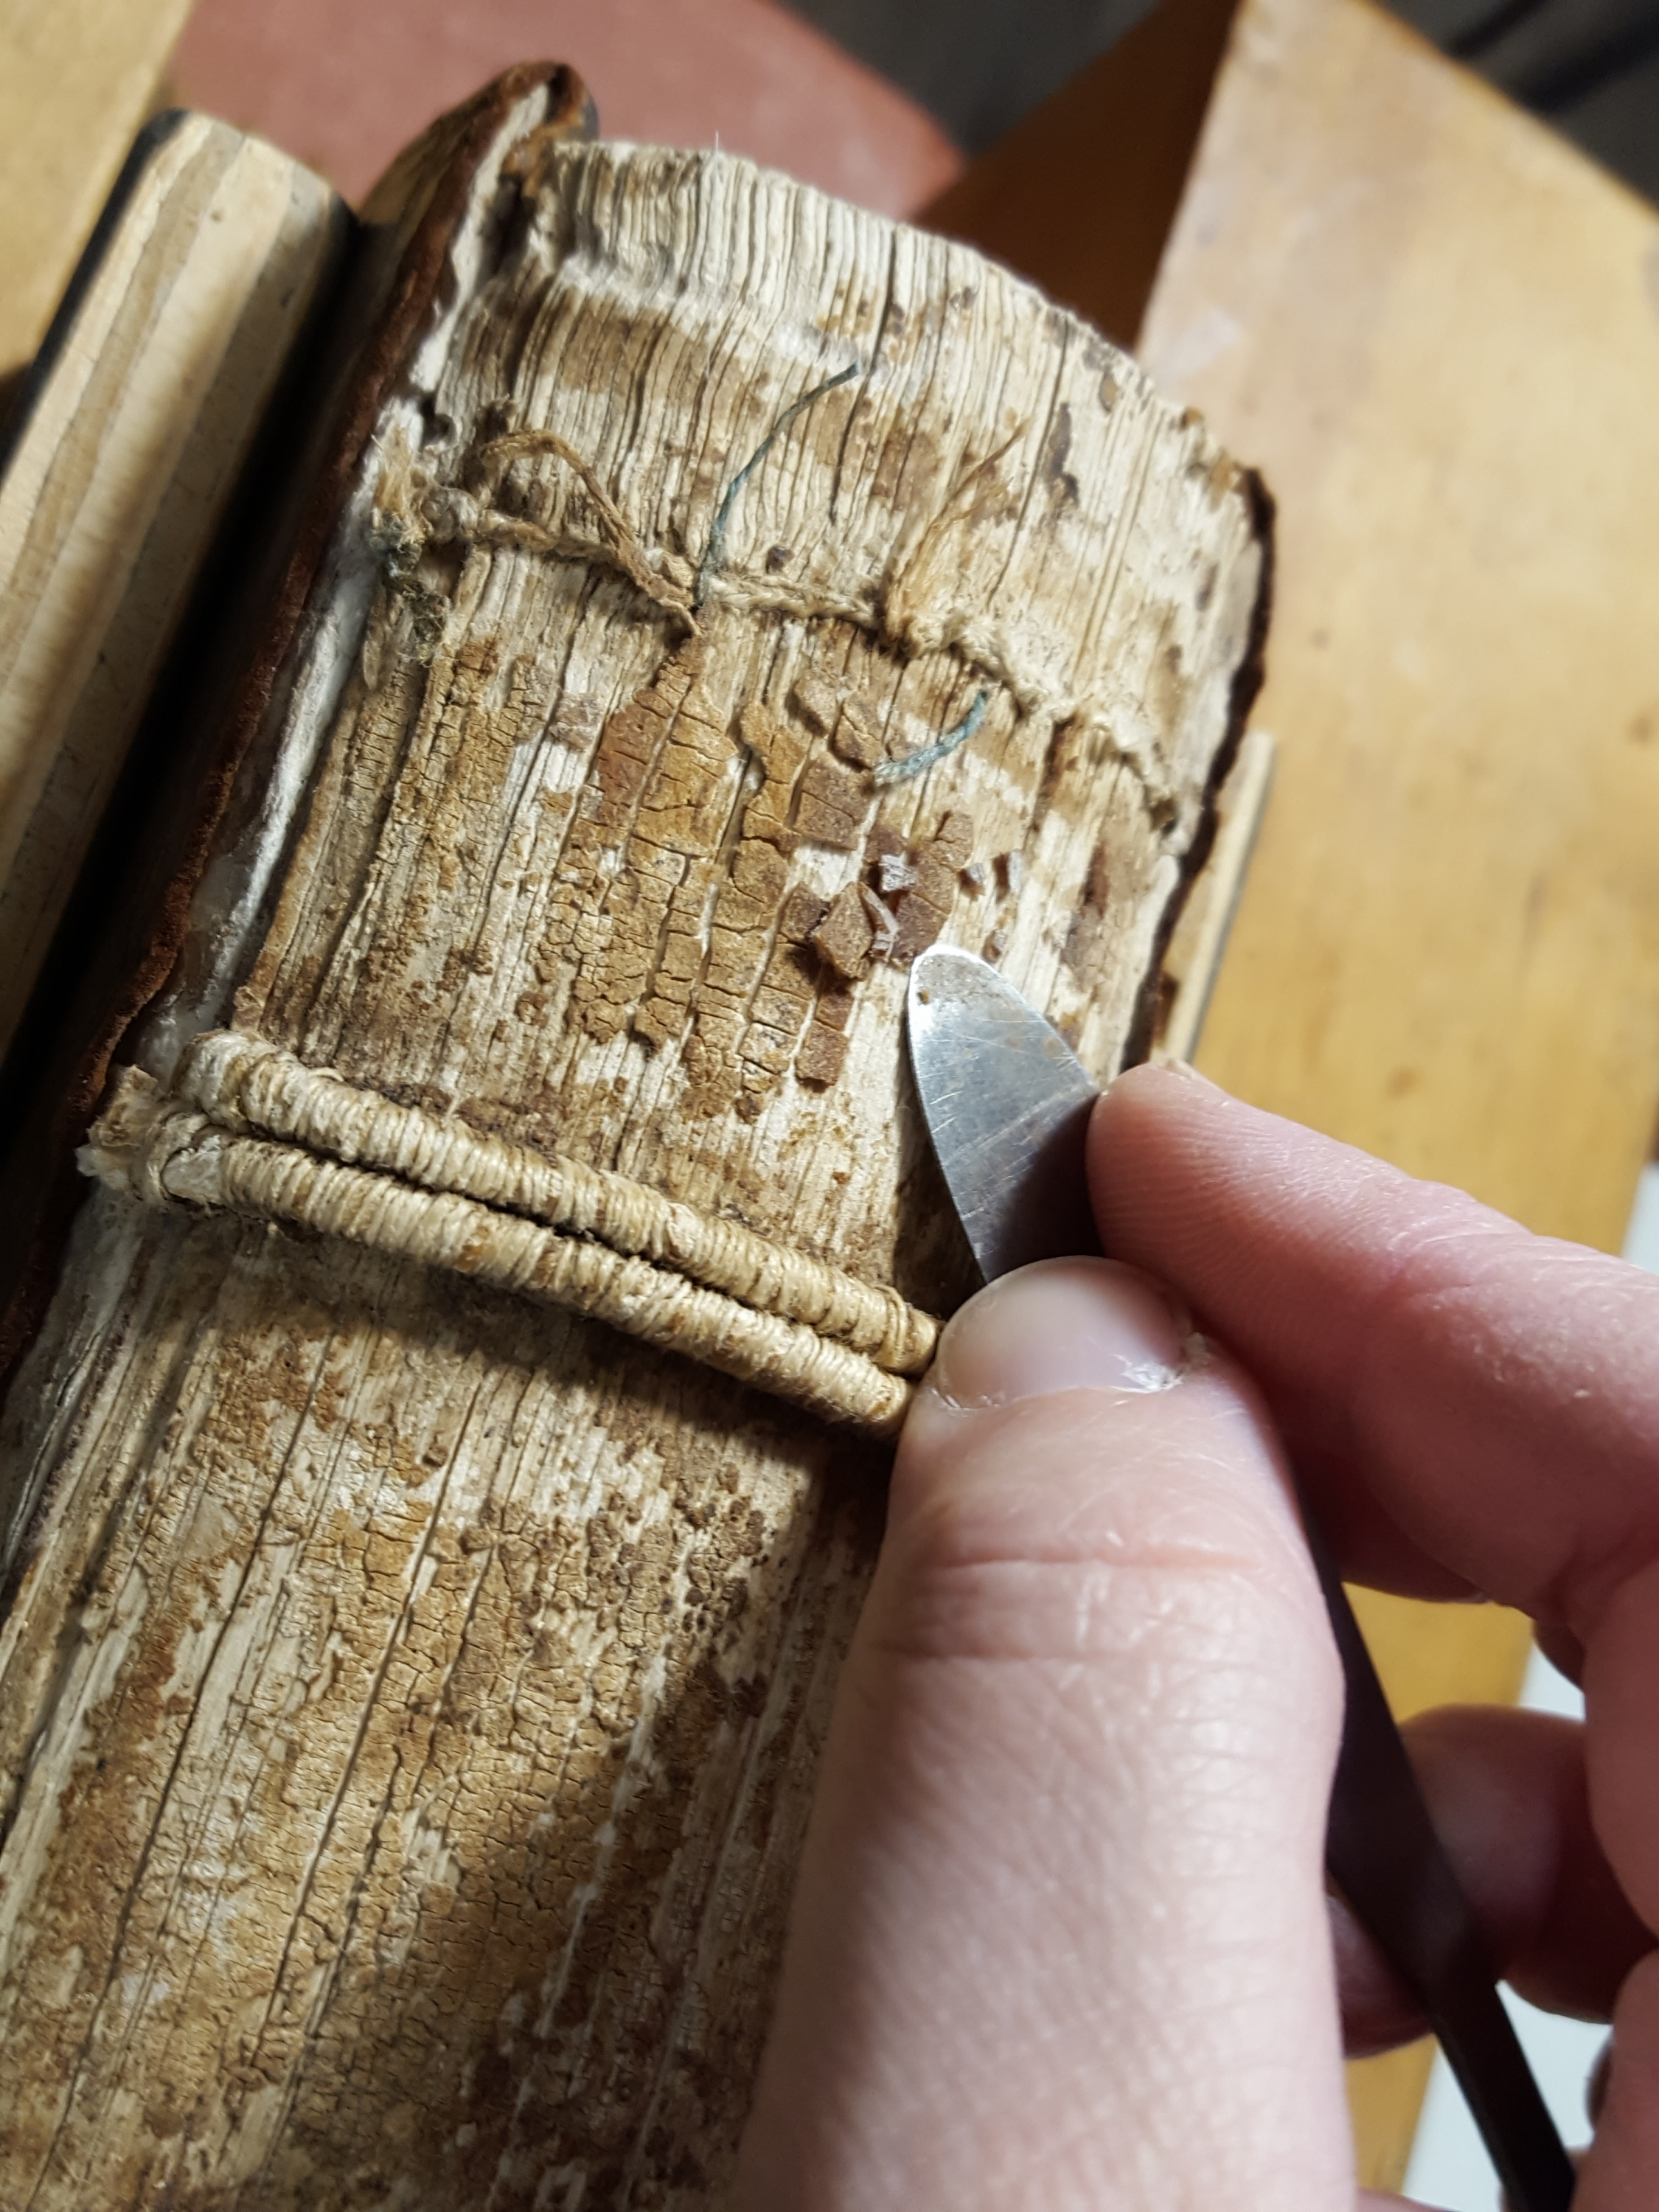 Spine of book being cleaned